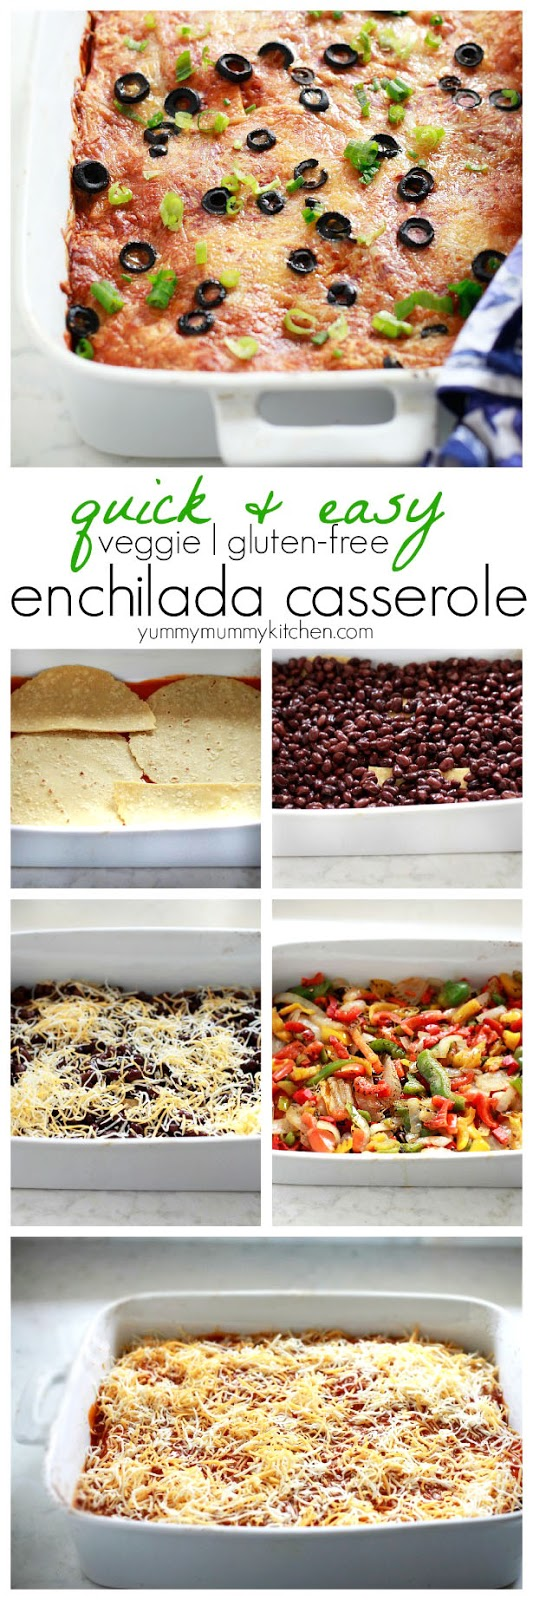 Easy Peasy Here S A Visual Of How I Layered The Casserole A Little Sauce Tortillas Beans Cheese And Peppers Easy Vegetarian Enchilada Bake